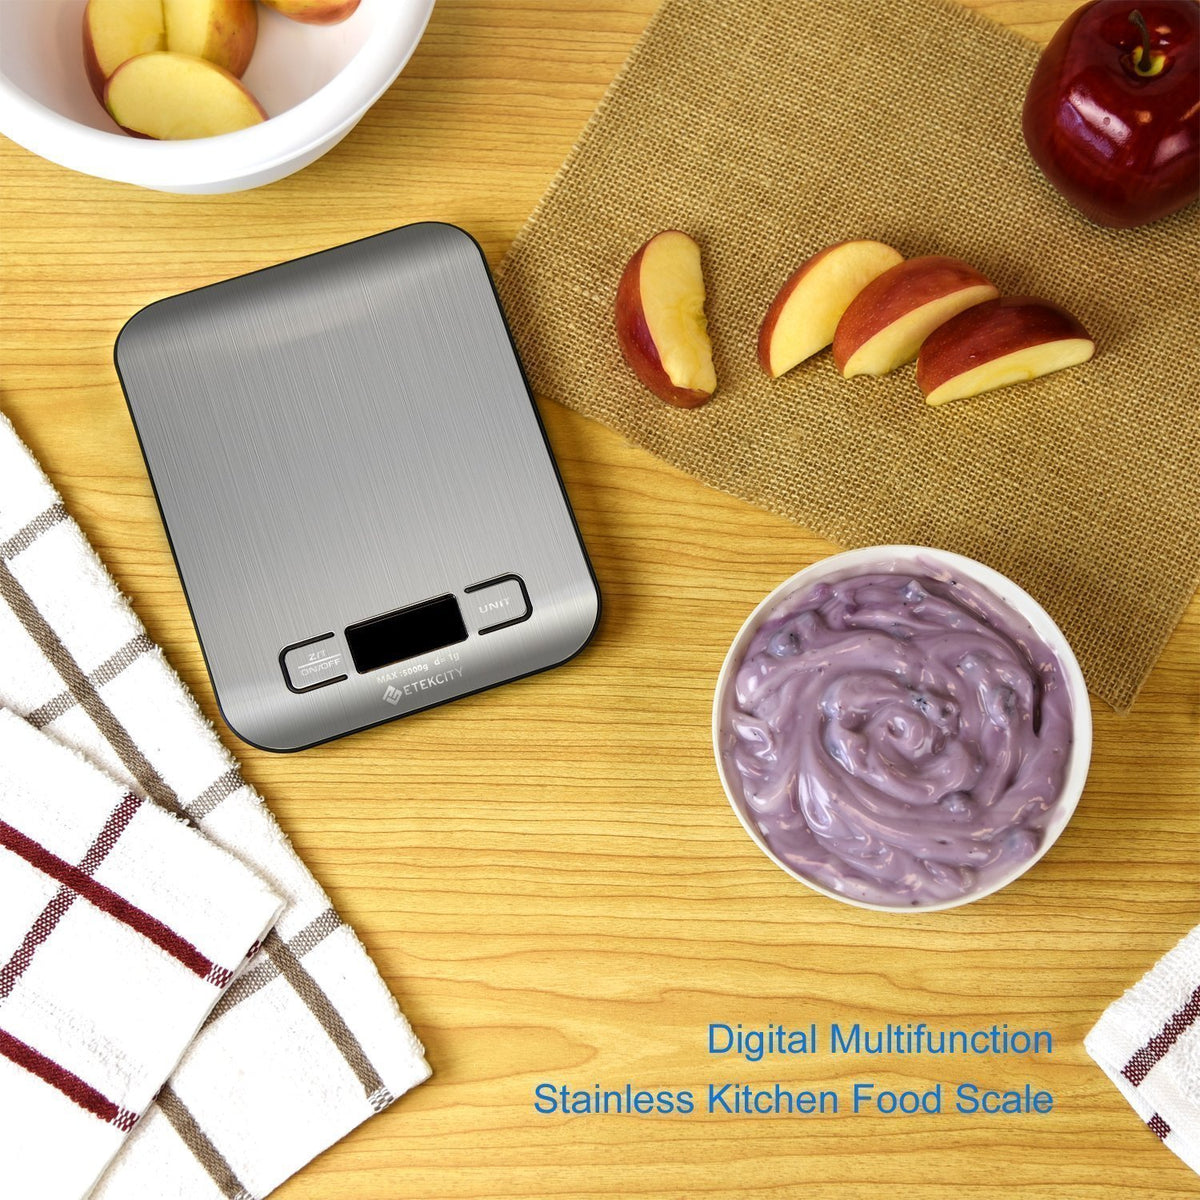 Digital Food Scale Multifunction